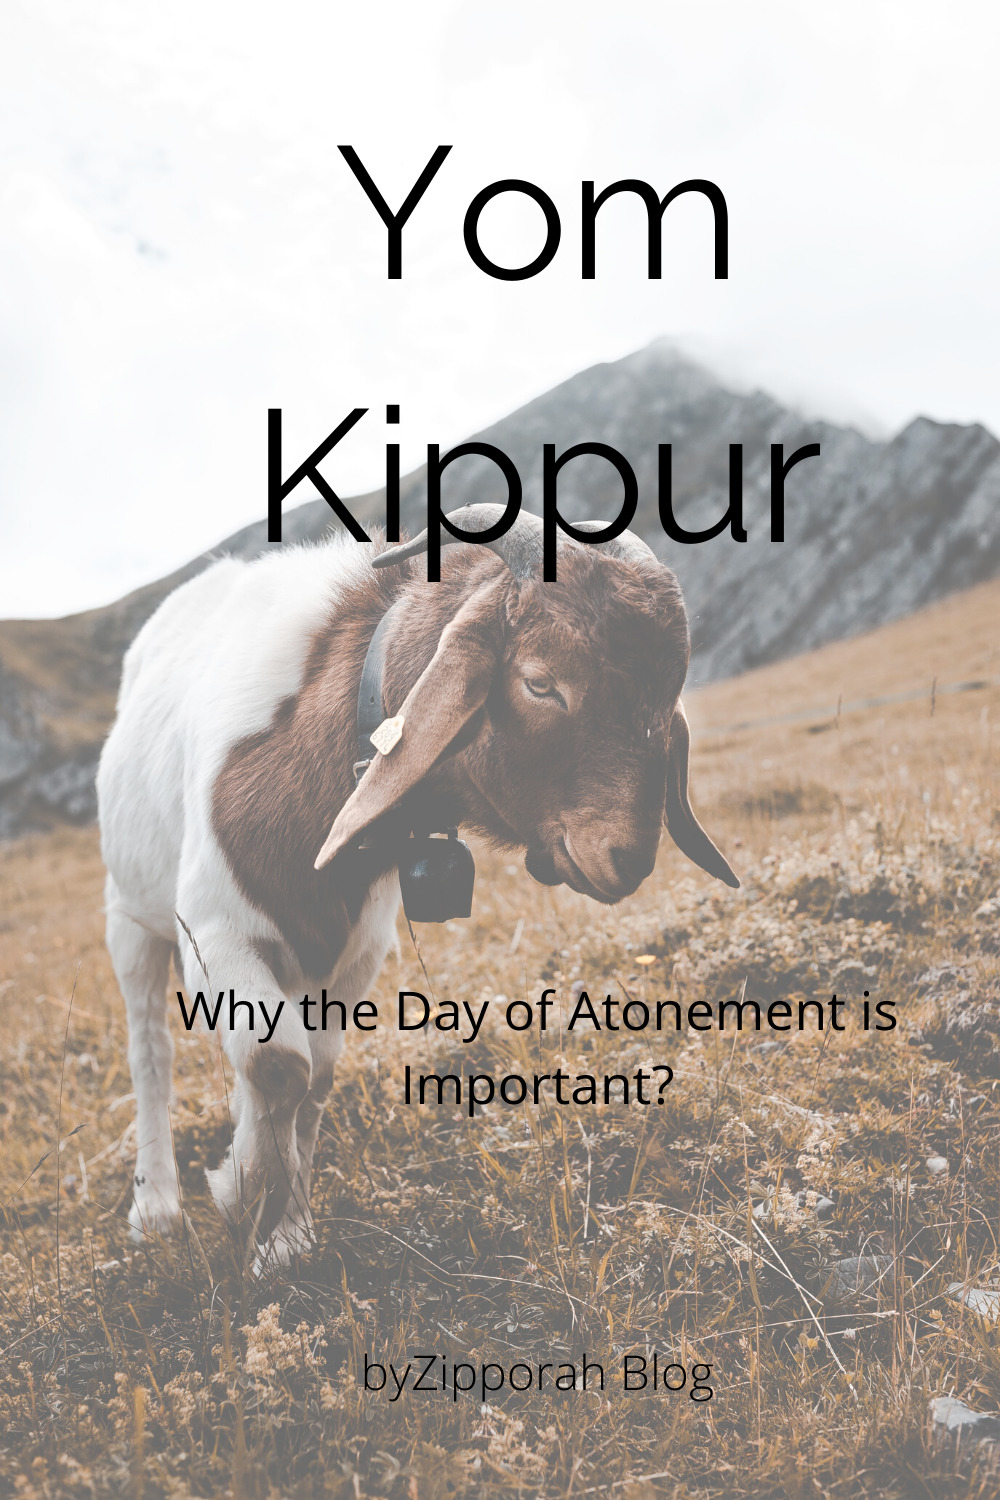 Why is Yom Kippur Important?